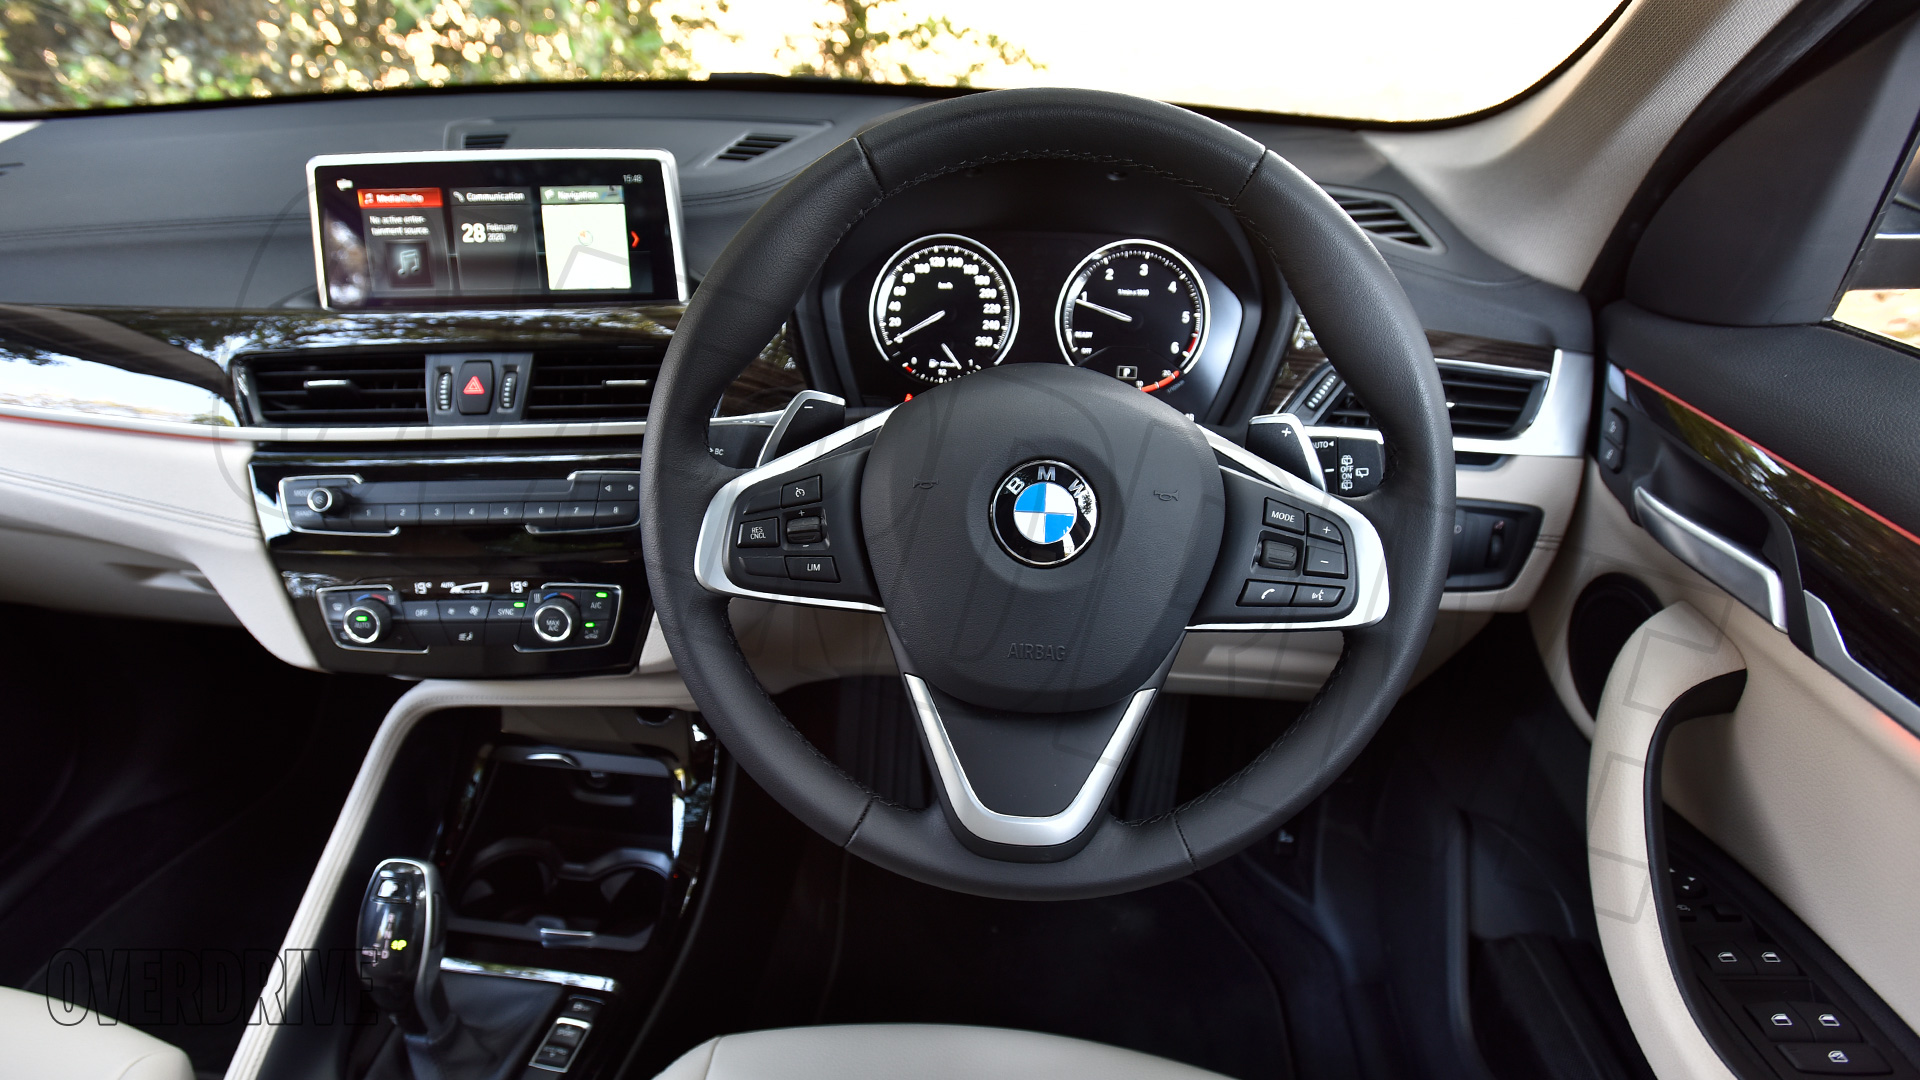 Bmw X1 2020 Sdrive20i Xline Interior Car Photos Overdrive